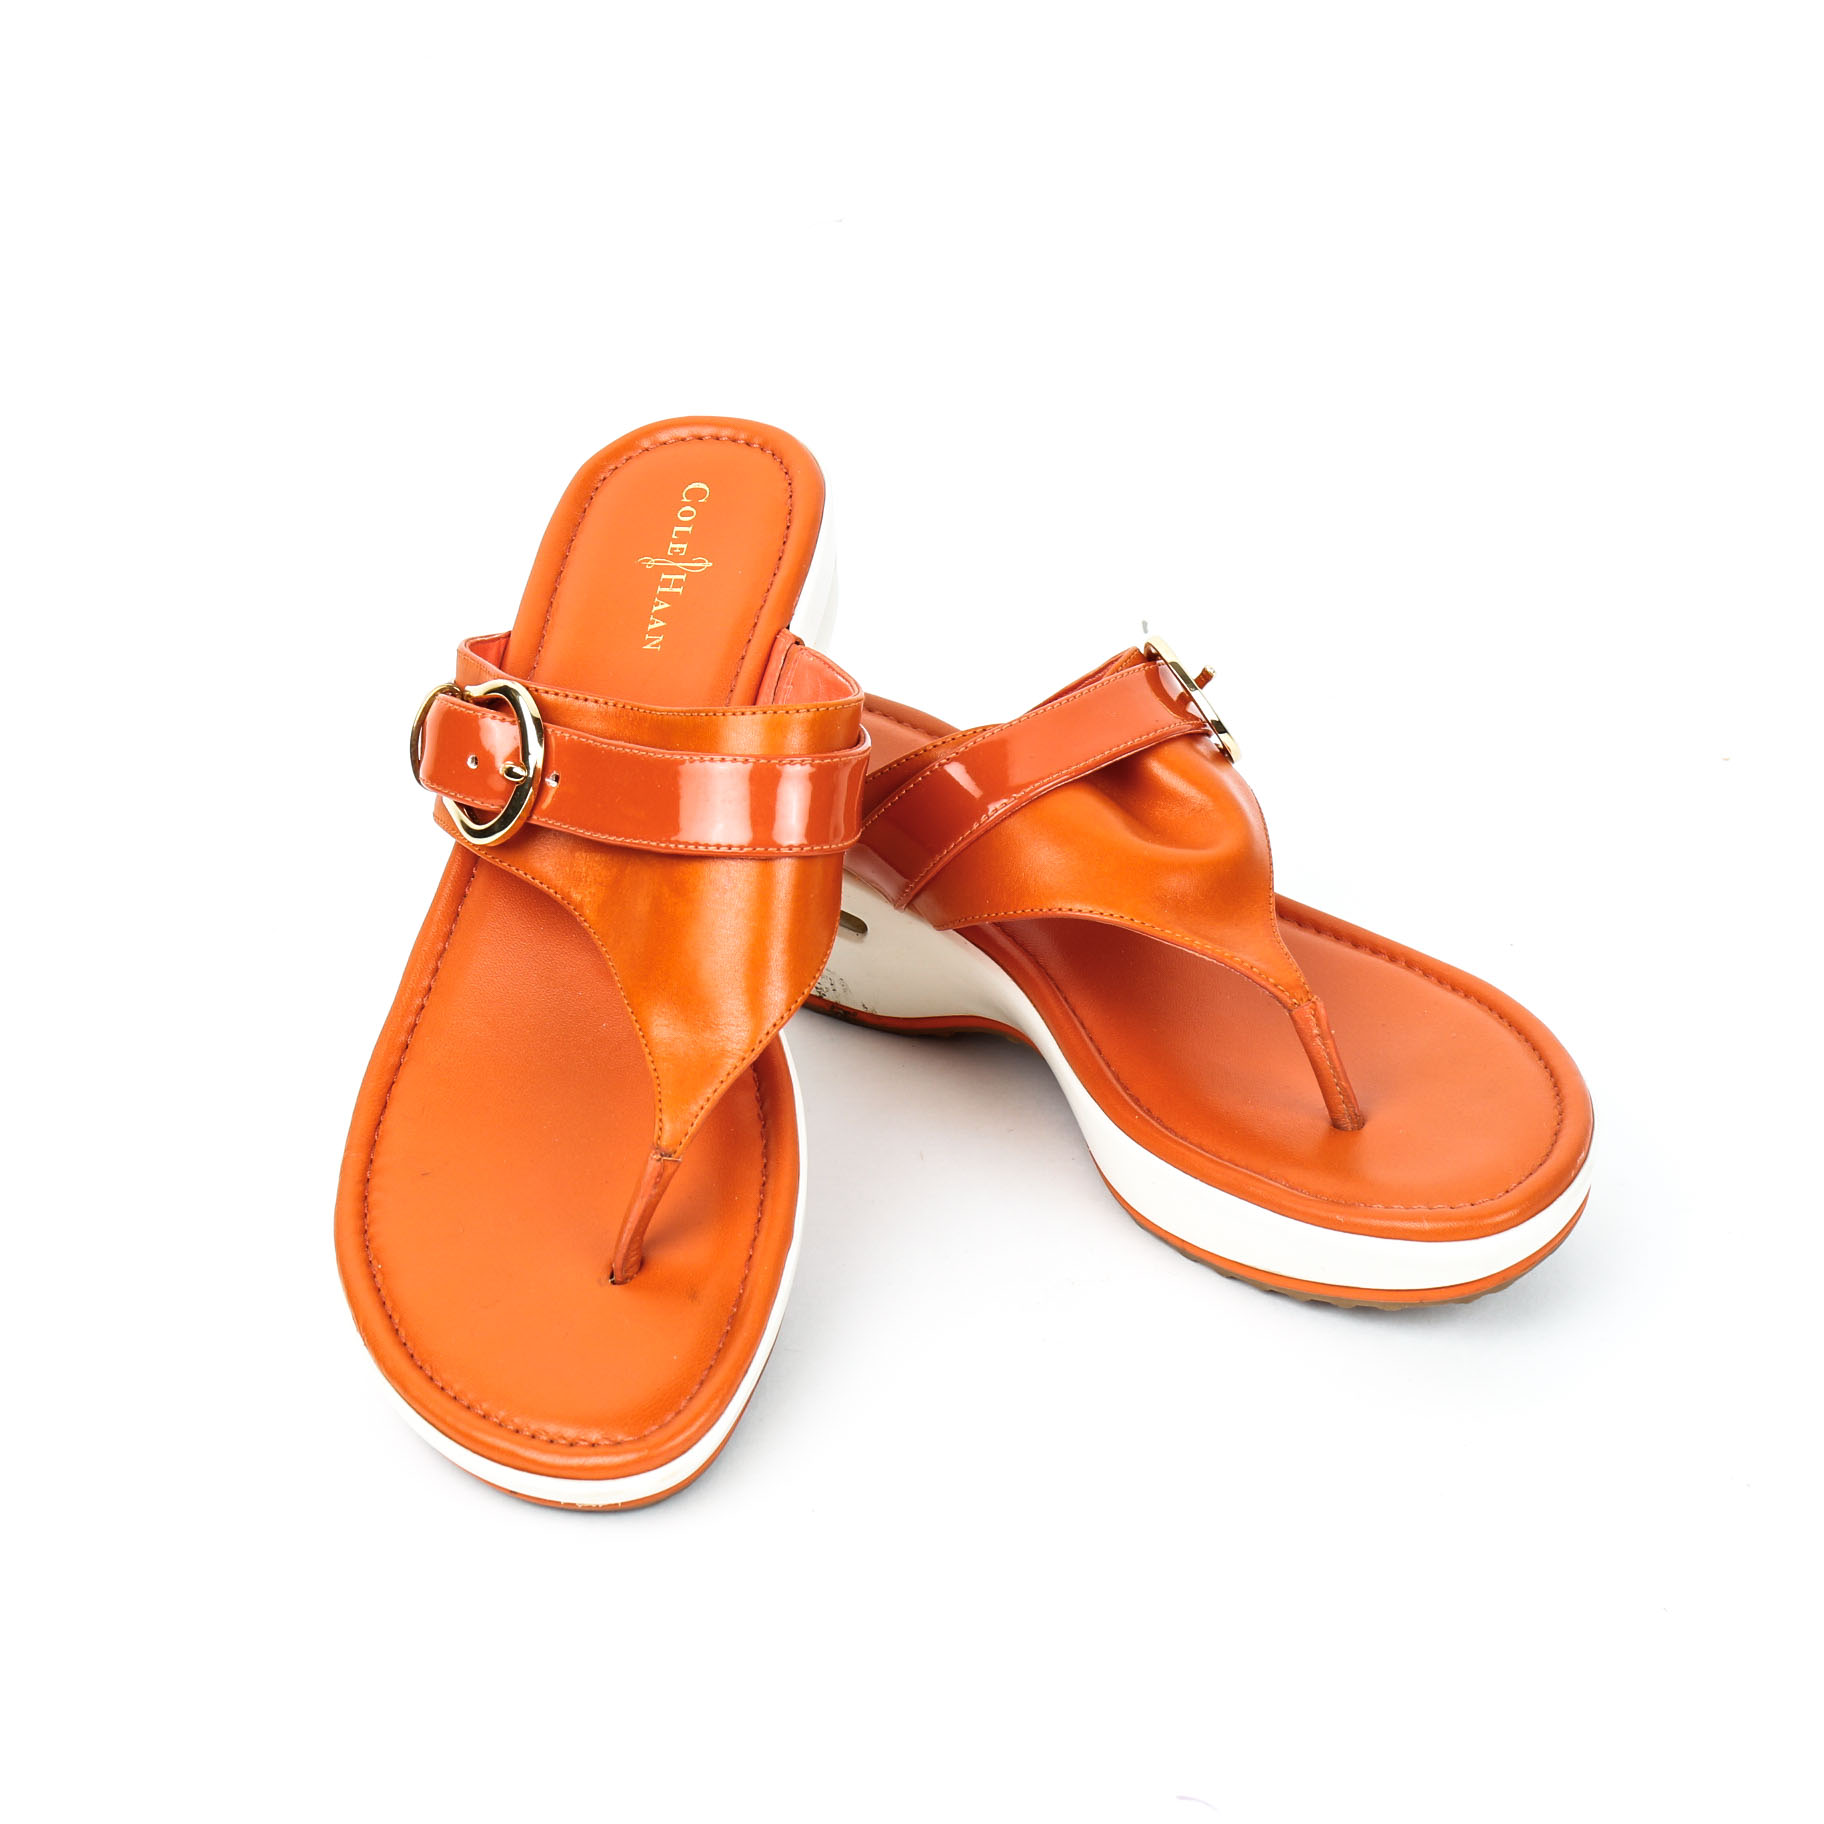 Cole Orange Sandals 9 Haan With Tone BucklesSize Gold 5b 2EIDH9YW